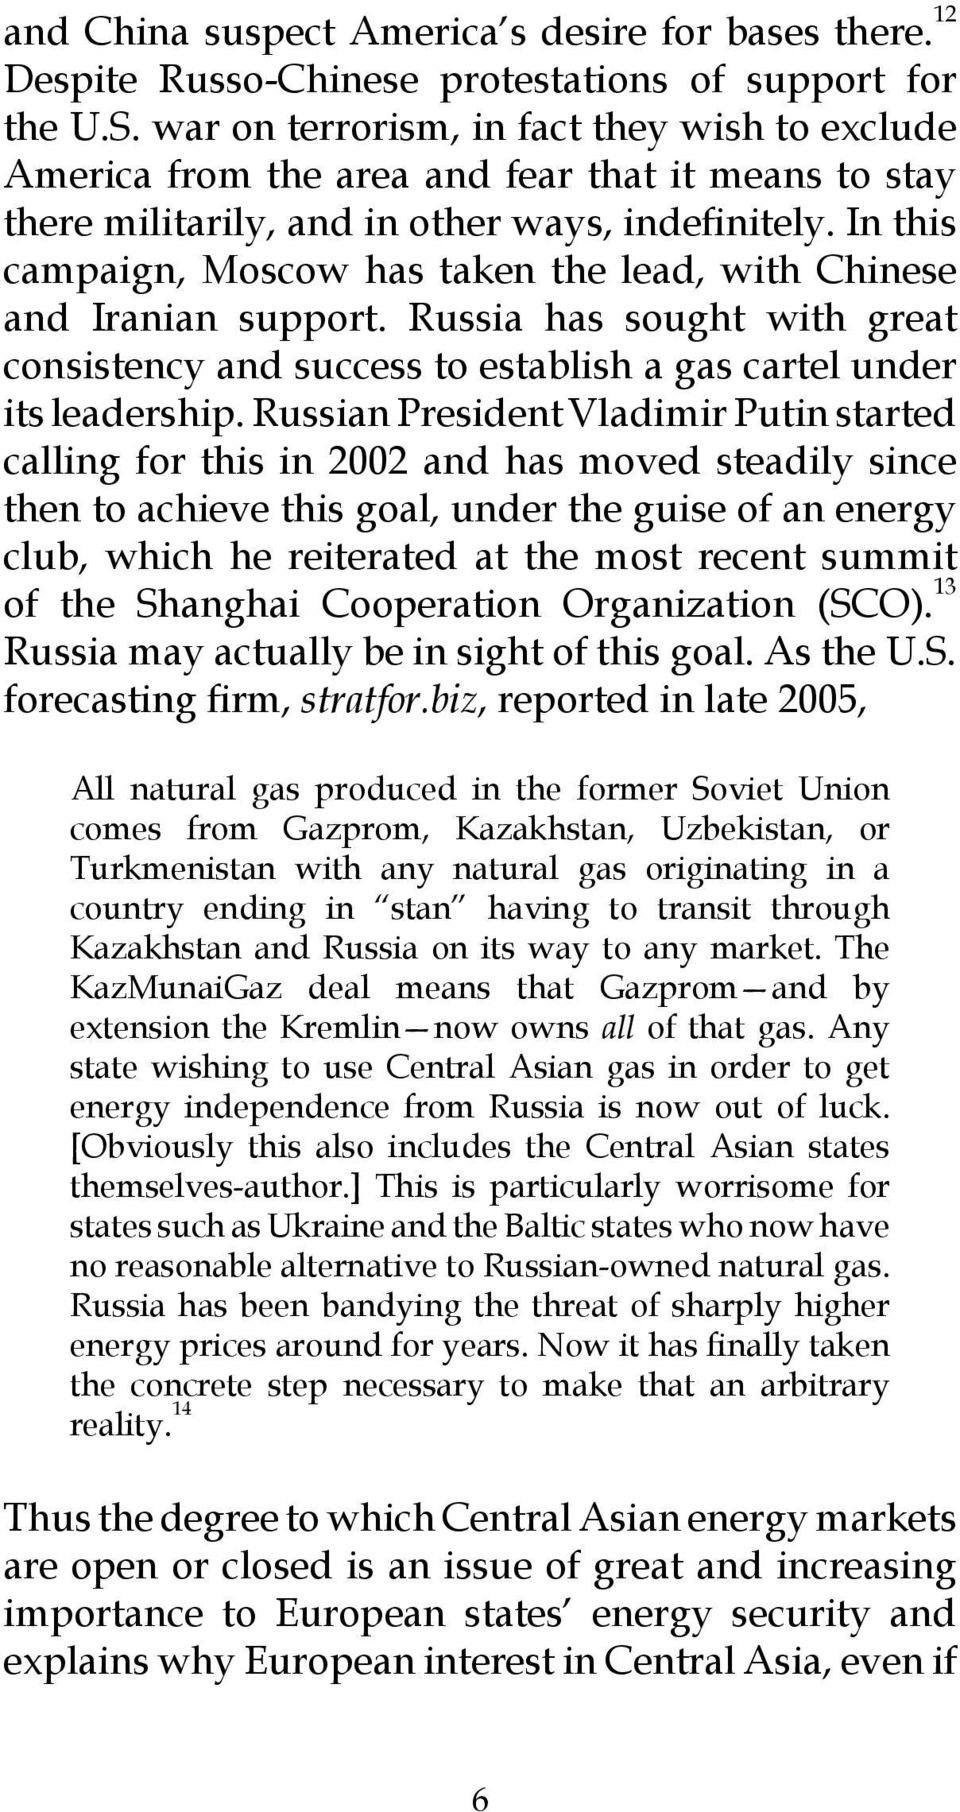 In this campaign, Moscow has taken the lead, with Chinese and Iranian support. Russia has sought with great consistency and success to establish a gas cartel under its leadership.